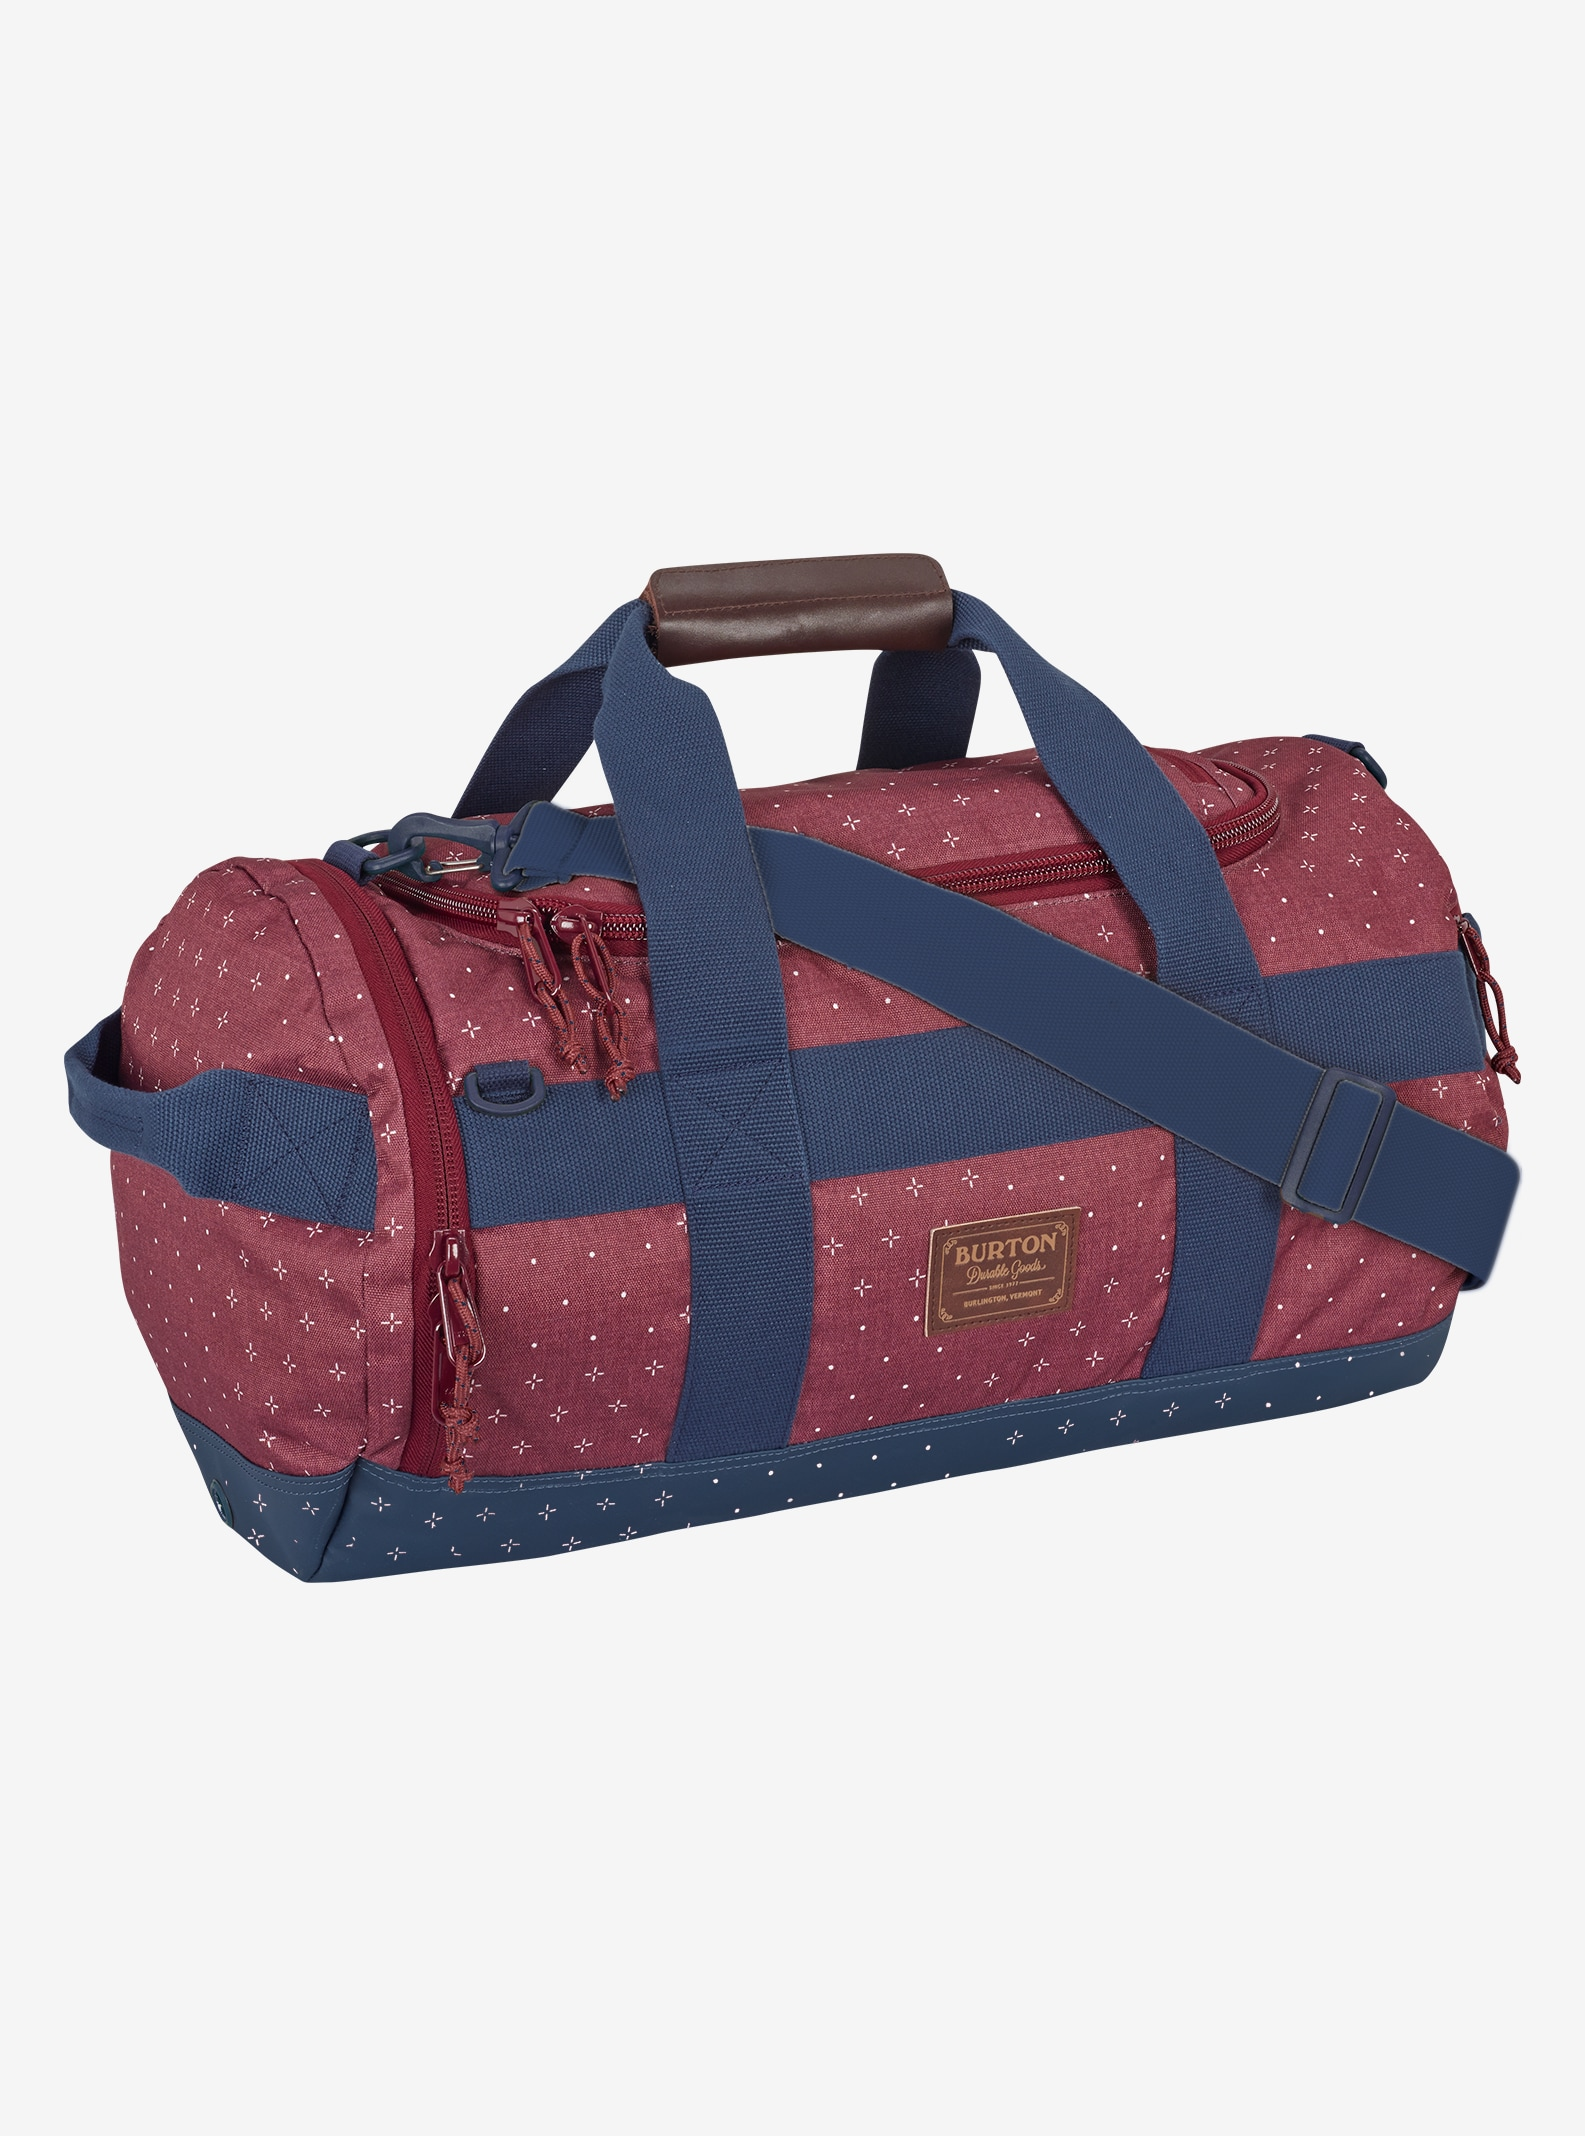 Burton Backhill Duffel Bag Small 40L shown in Mandana Print